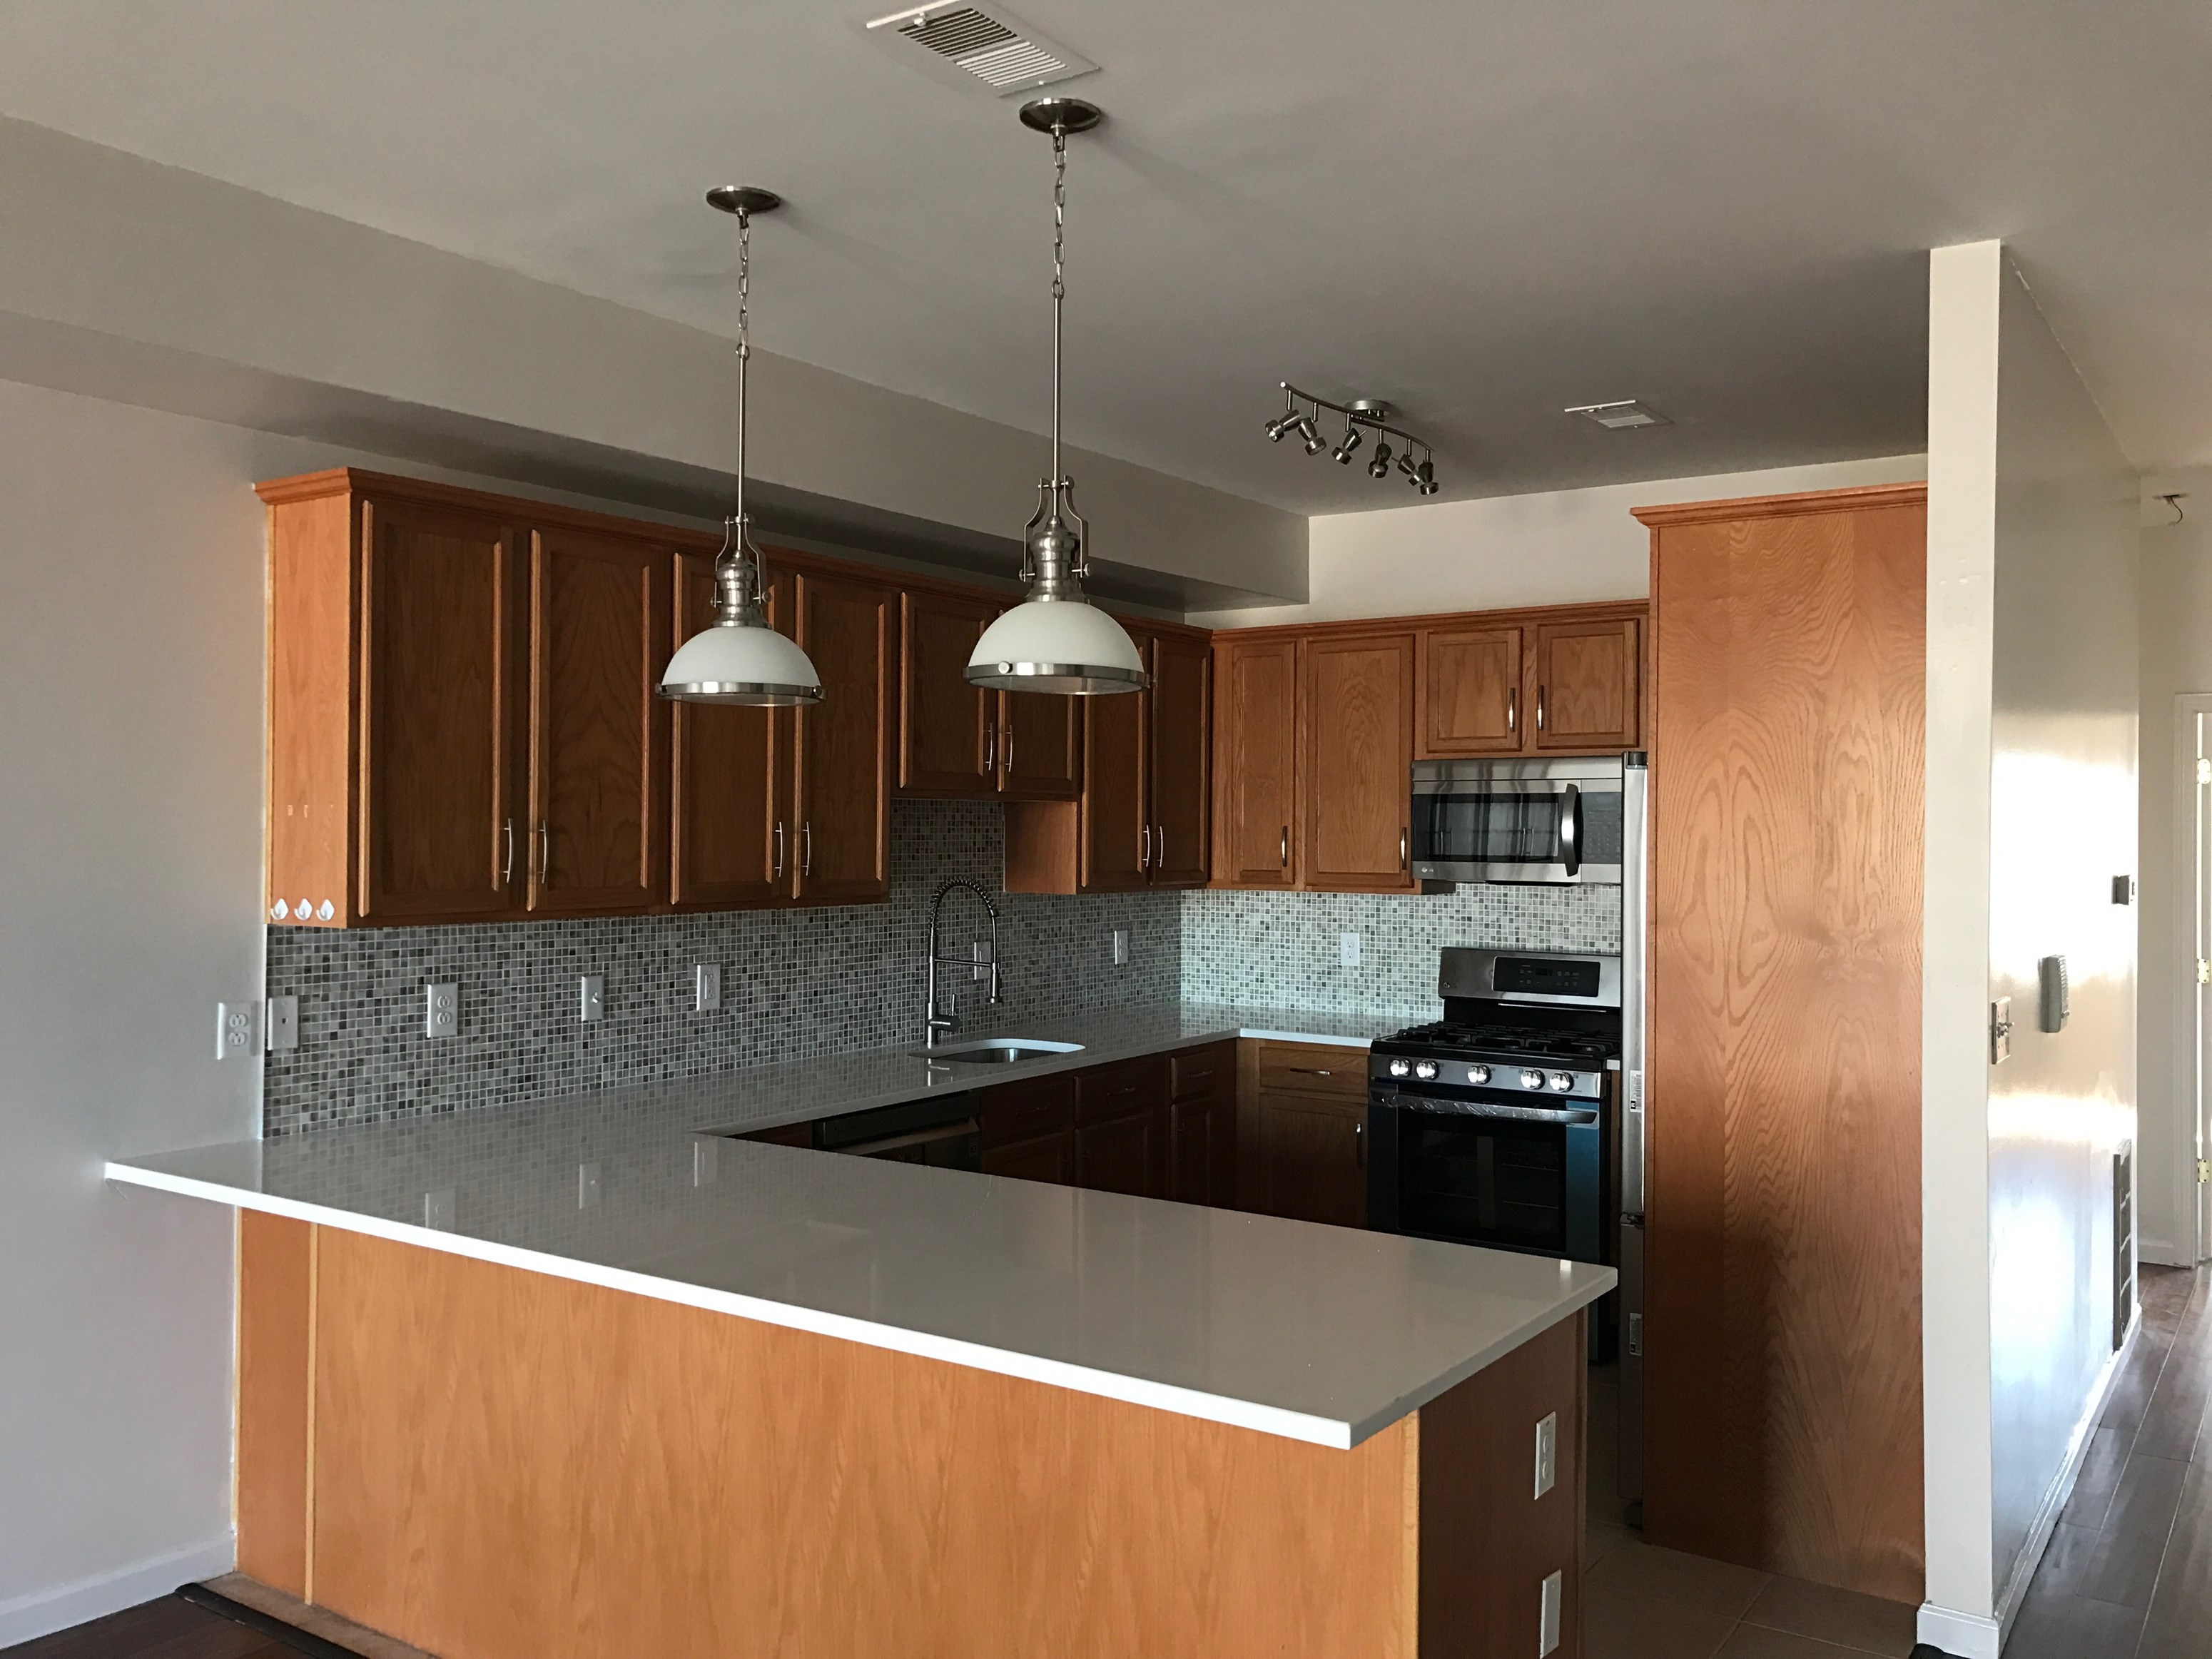 Cool Kitchen And Bath Tile Flooring Tiny Steam Bath Unit Kolkata Square Tiled Baths Showers Showerbathdesign Youthful Rebath Average Costs ColouredBathroom Wall Fixtures House For Rent In New Jersey \u2013 Apartments, Flats, Commercial Space ..